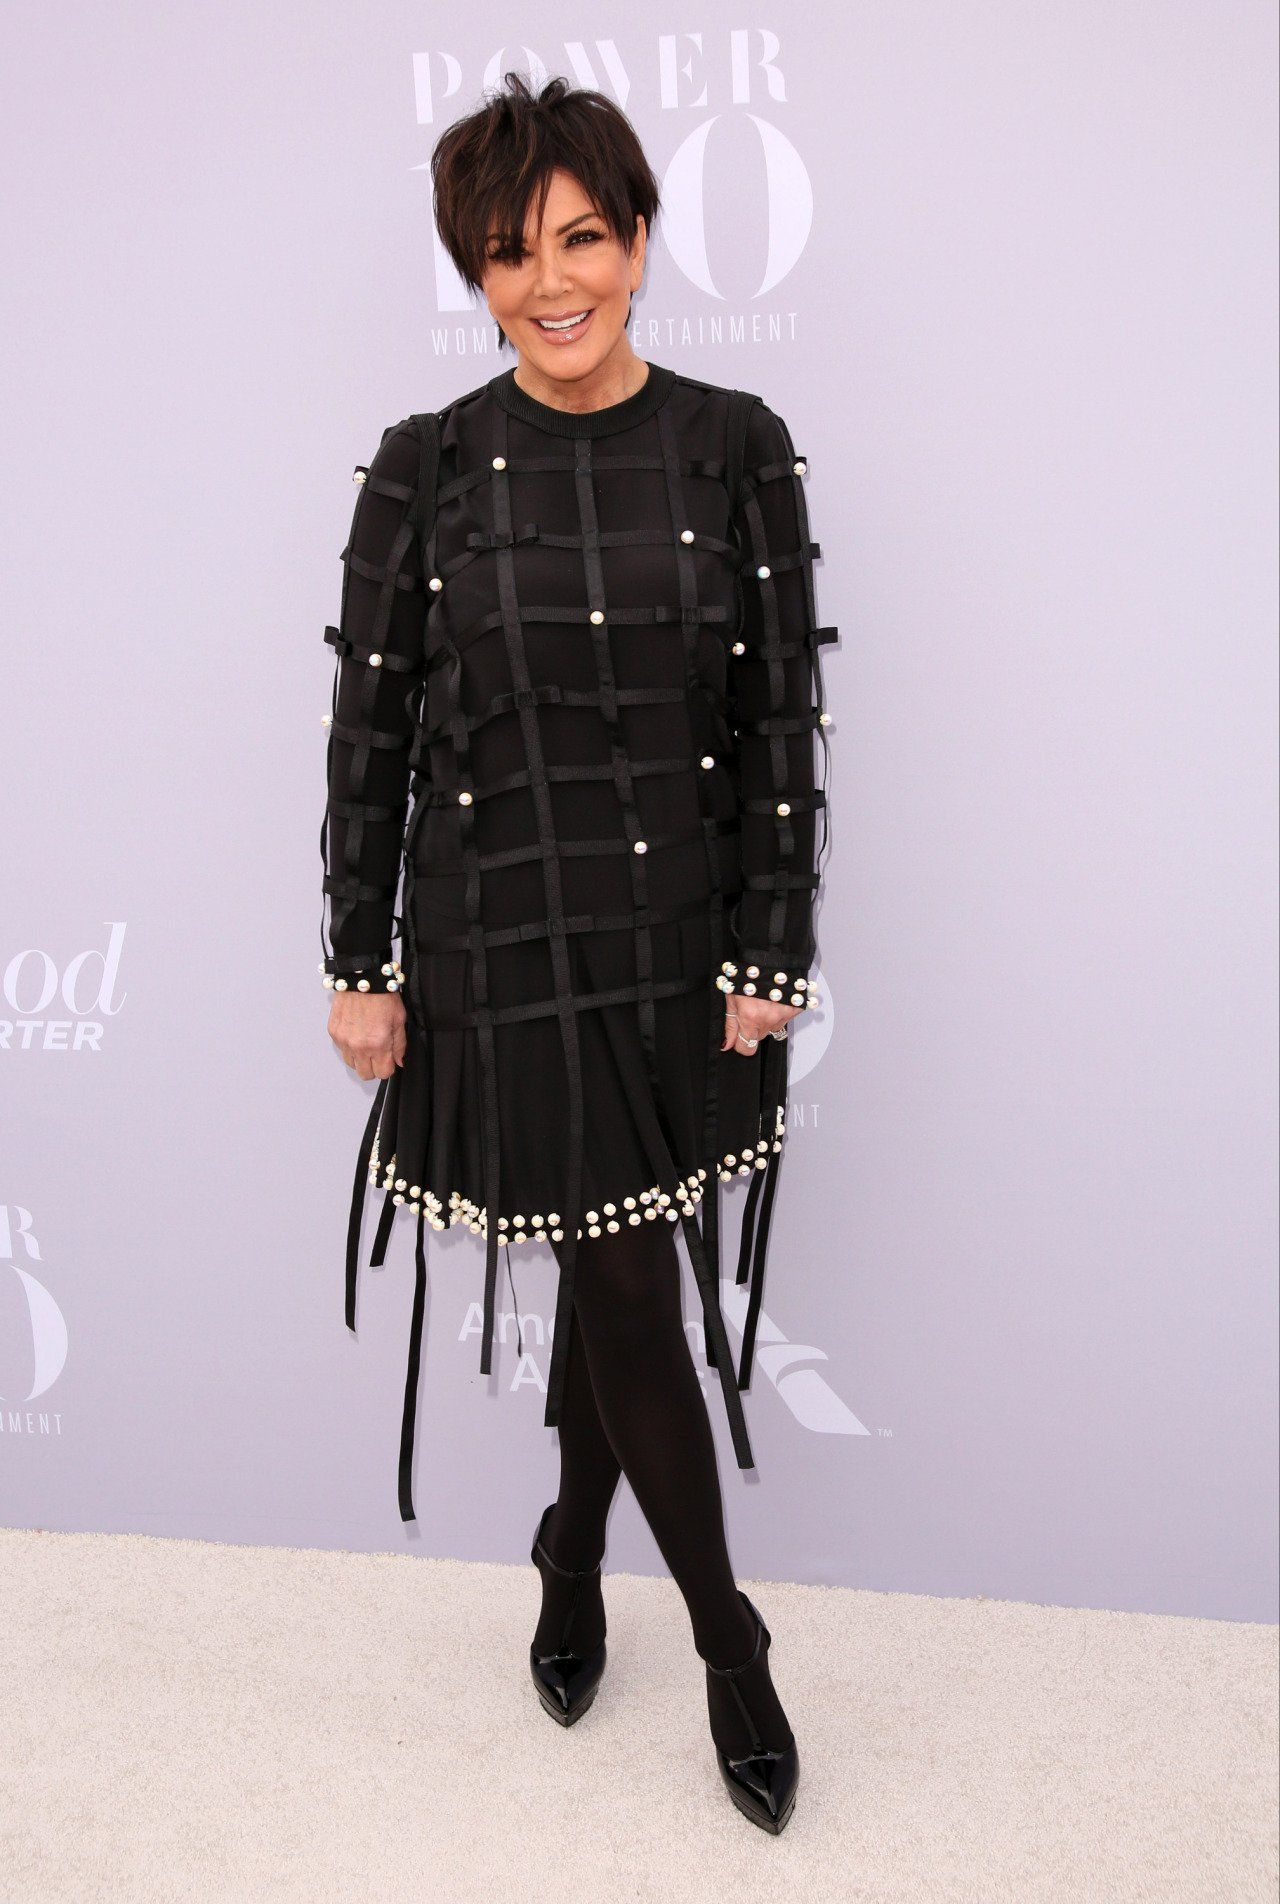 Kris Jenner in 'pregnancy scare' on Keeping Up With the Kardashians - Yahoo News